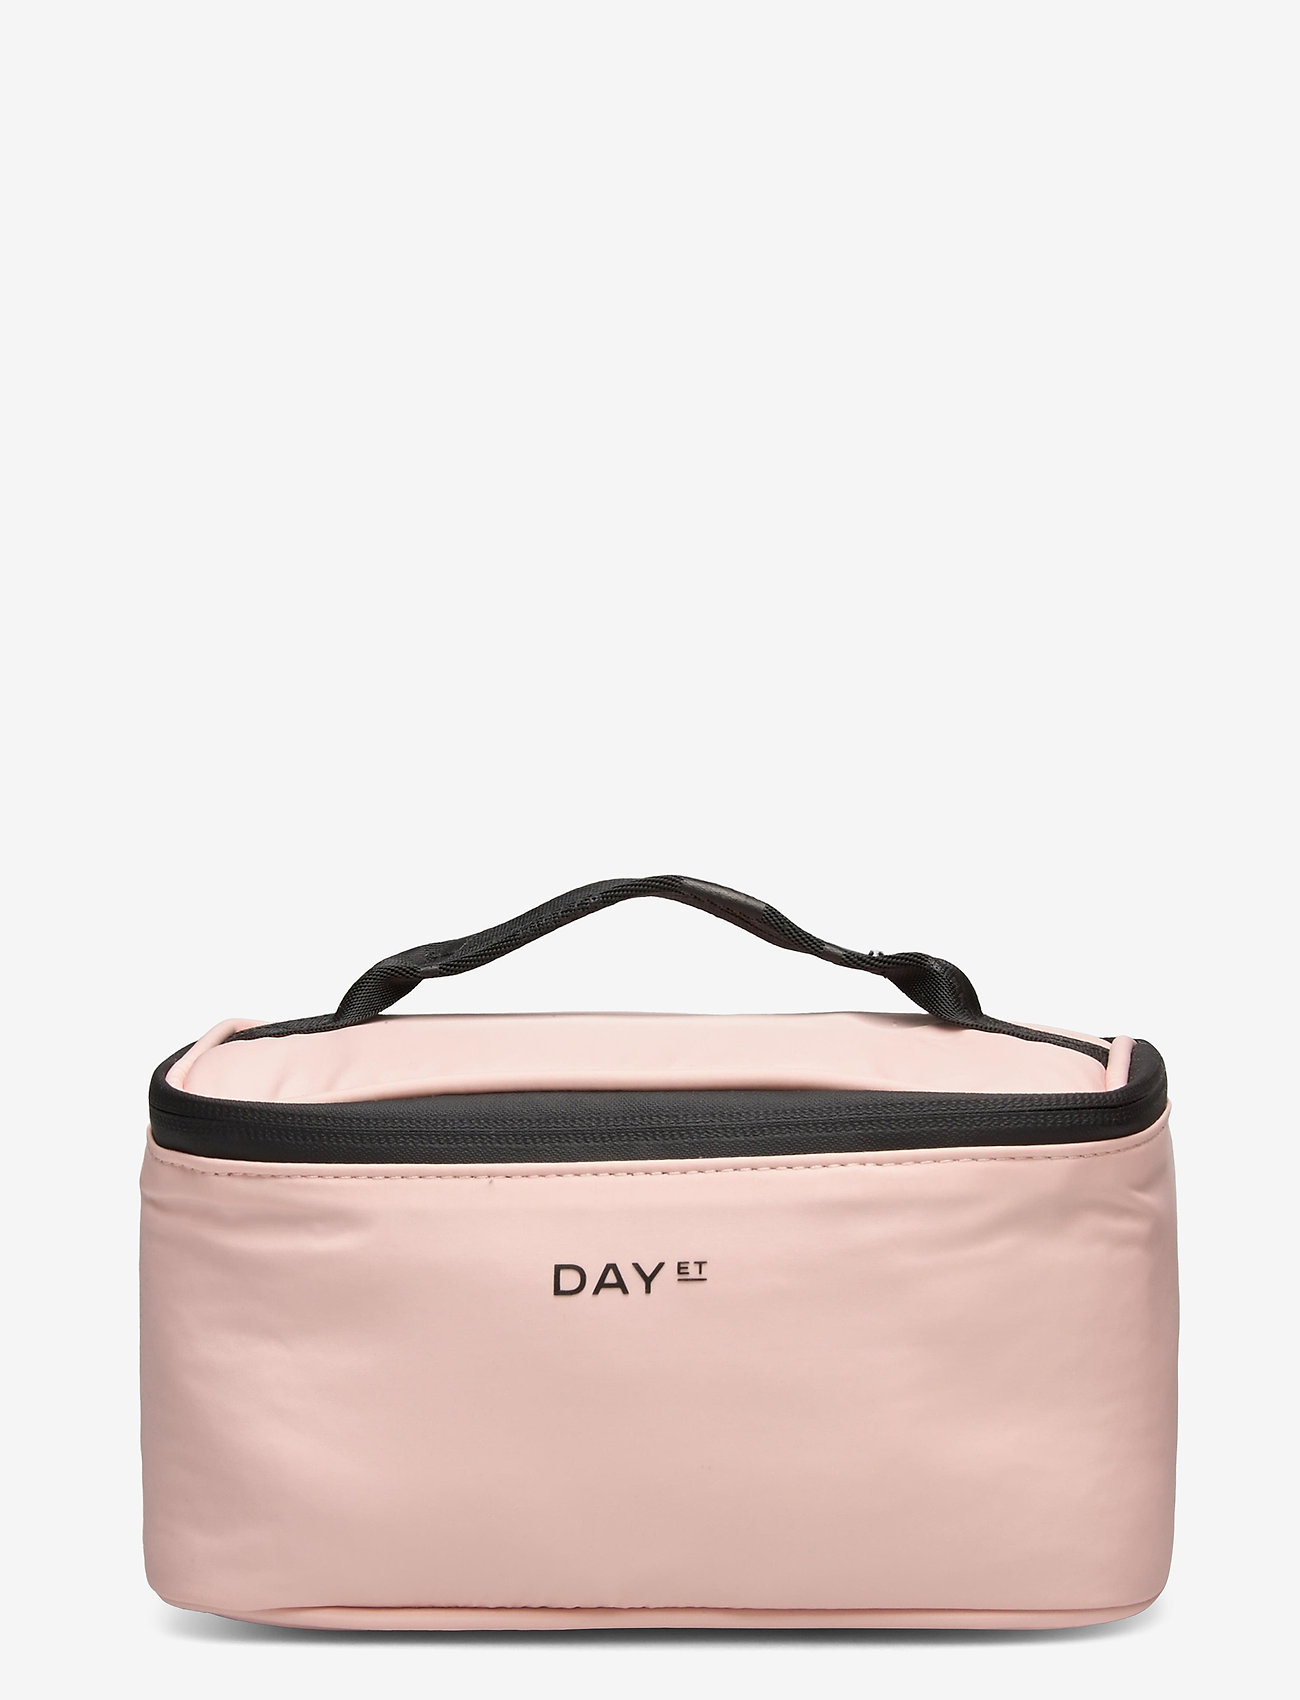 DAY et - Day RE-LB Sport Cosmetic - bags - shell pink - 0